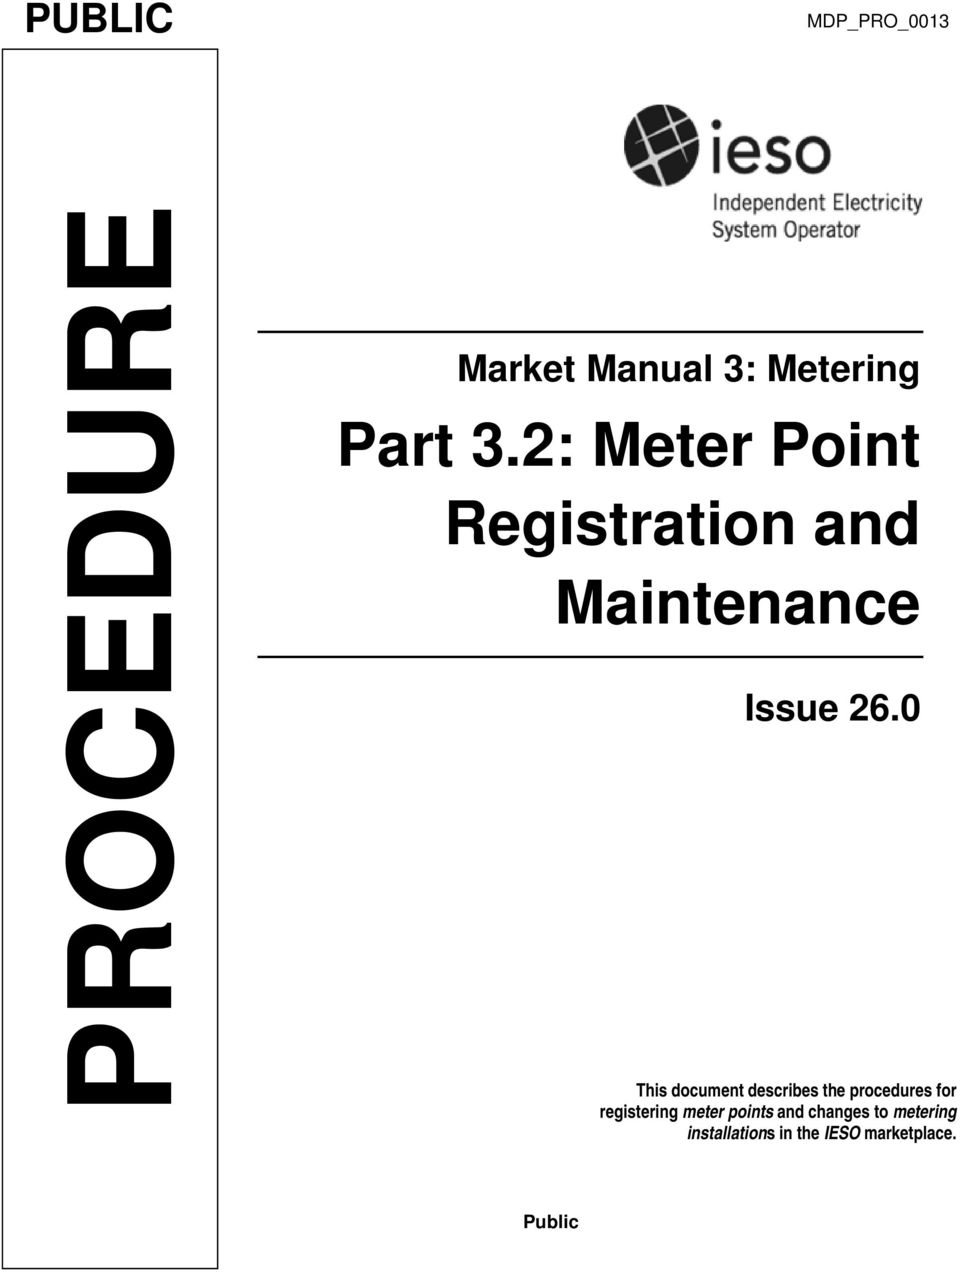 0 This document describes the procedures for registering meter